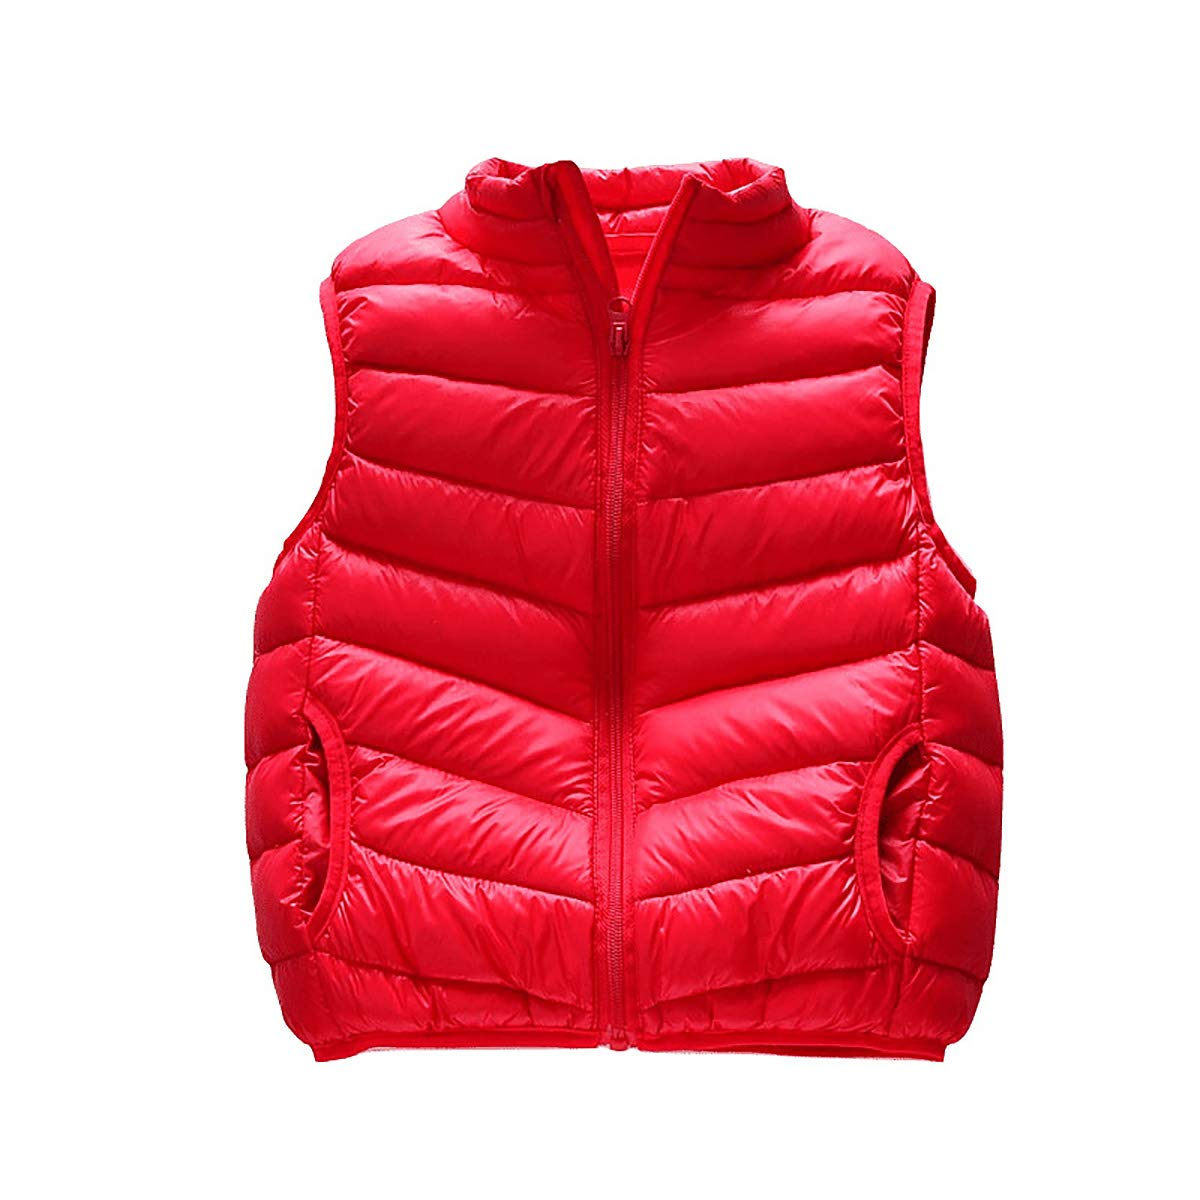 FASH Baby Girls Boys Warm Waistcoat Kids Autumn Winter Lightweight Gilet Vest Sleeveless Jackets Outwear for 2-6Years,Red,90cm by FASH